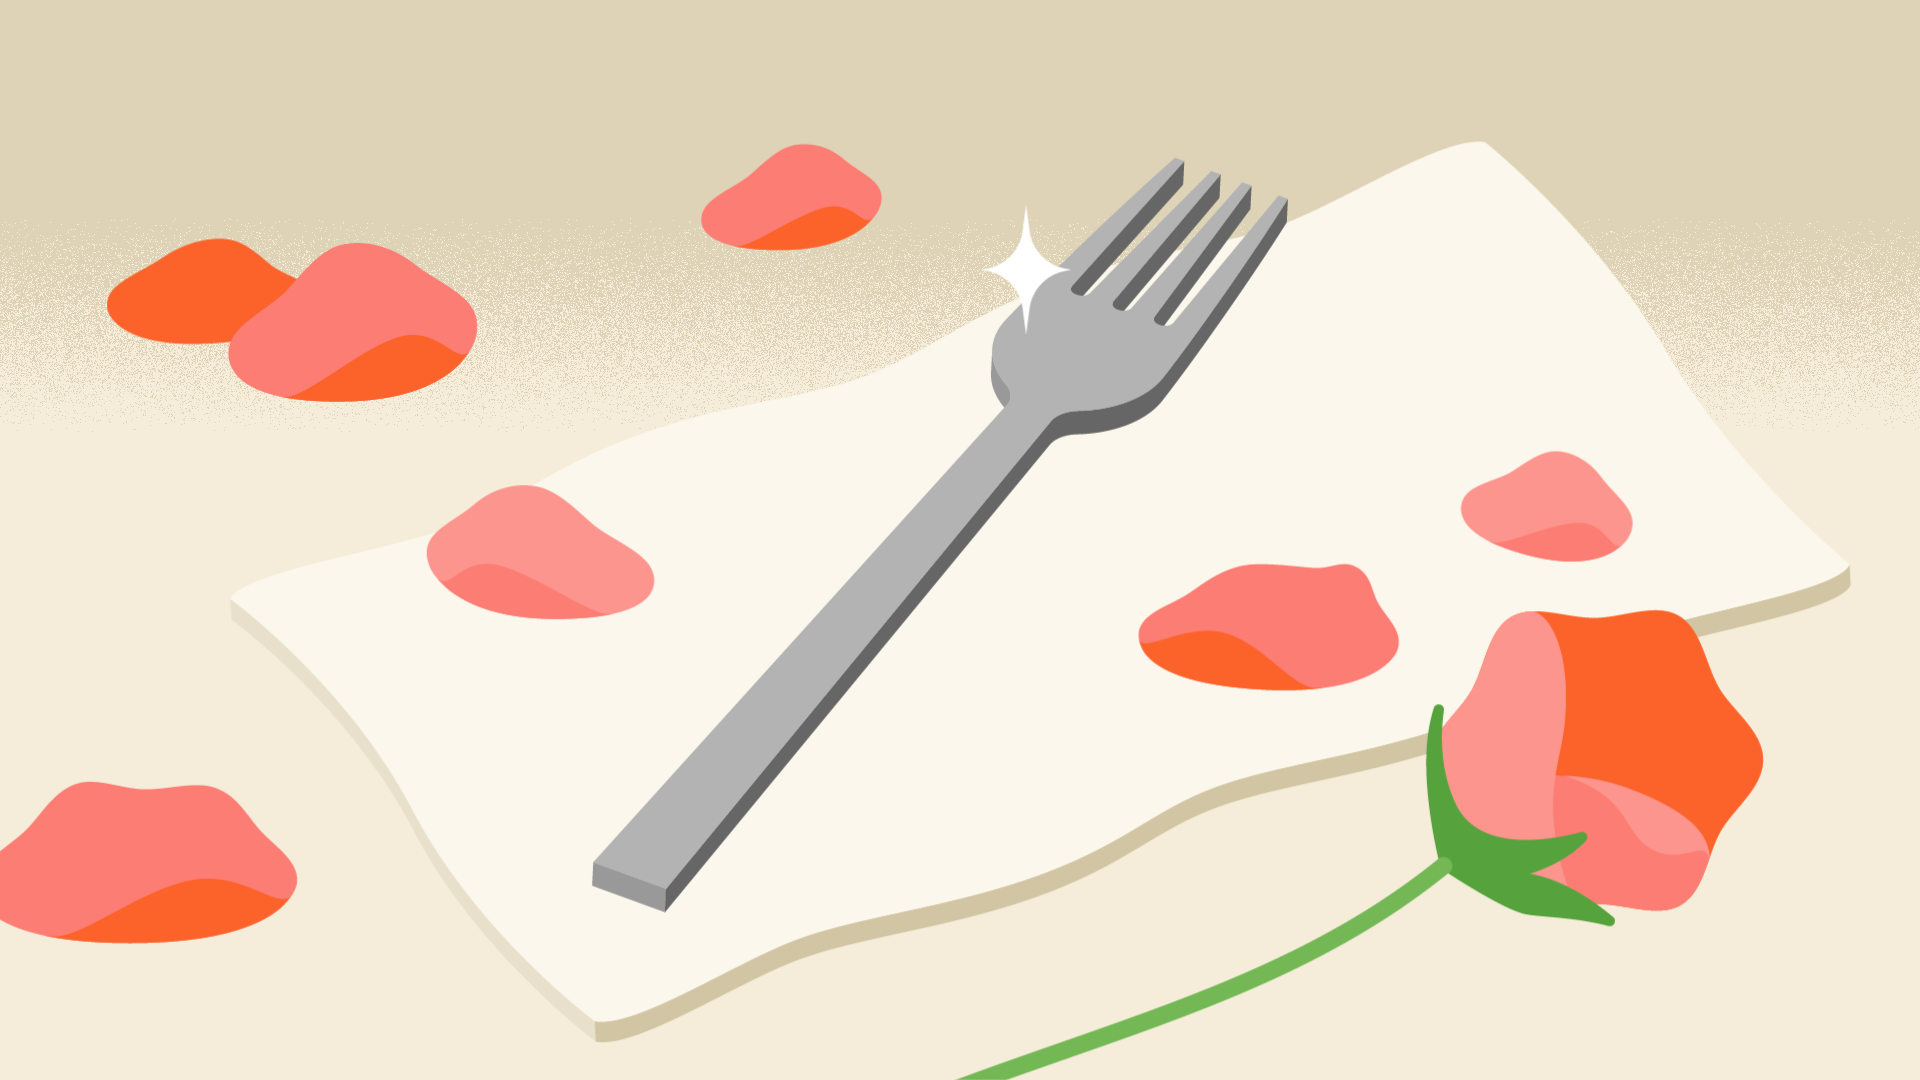 fork surrounded by rose petals